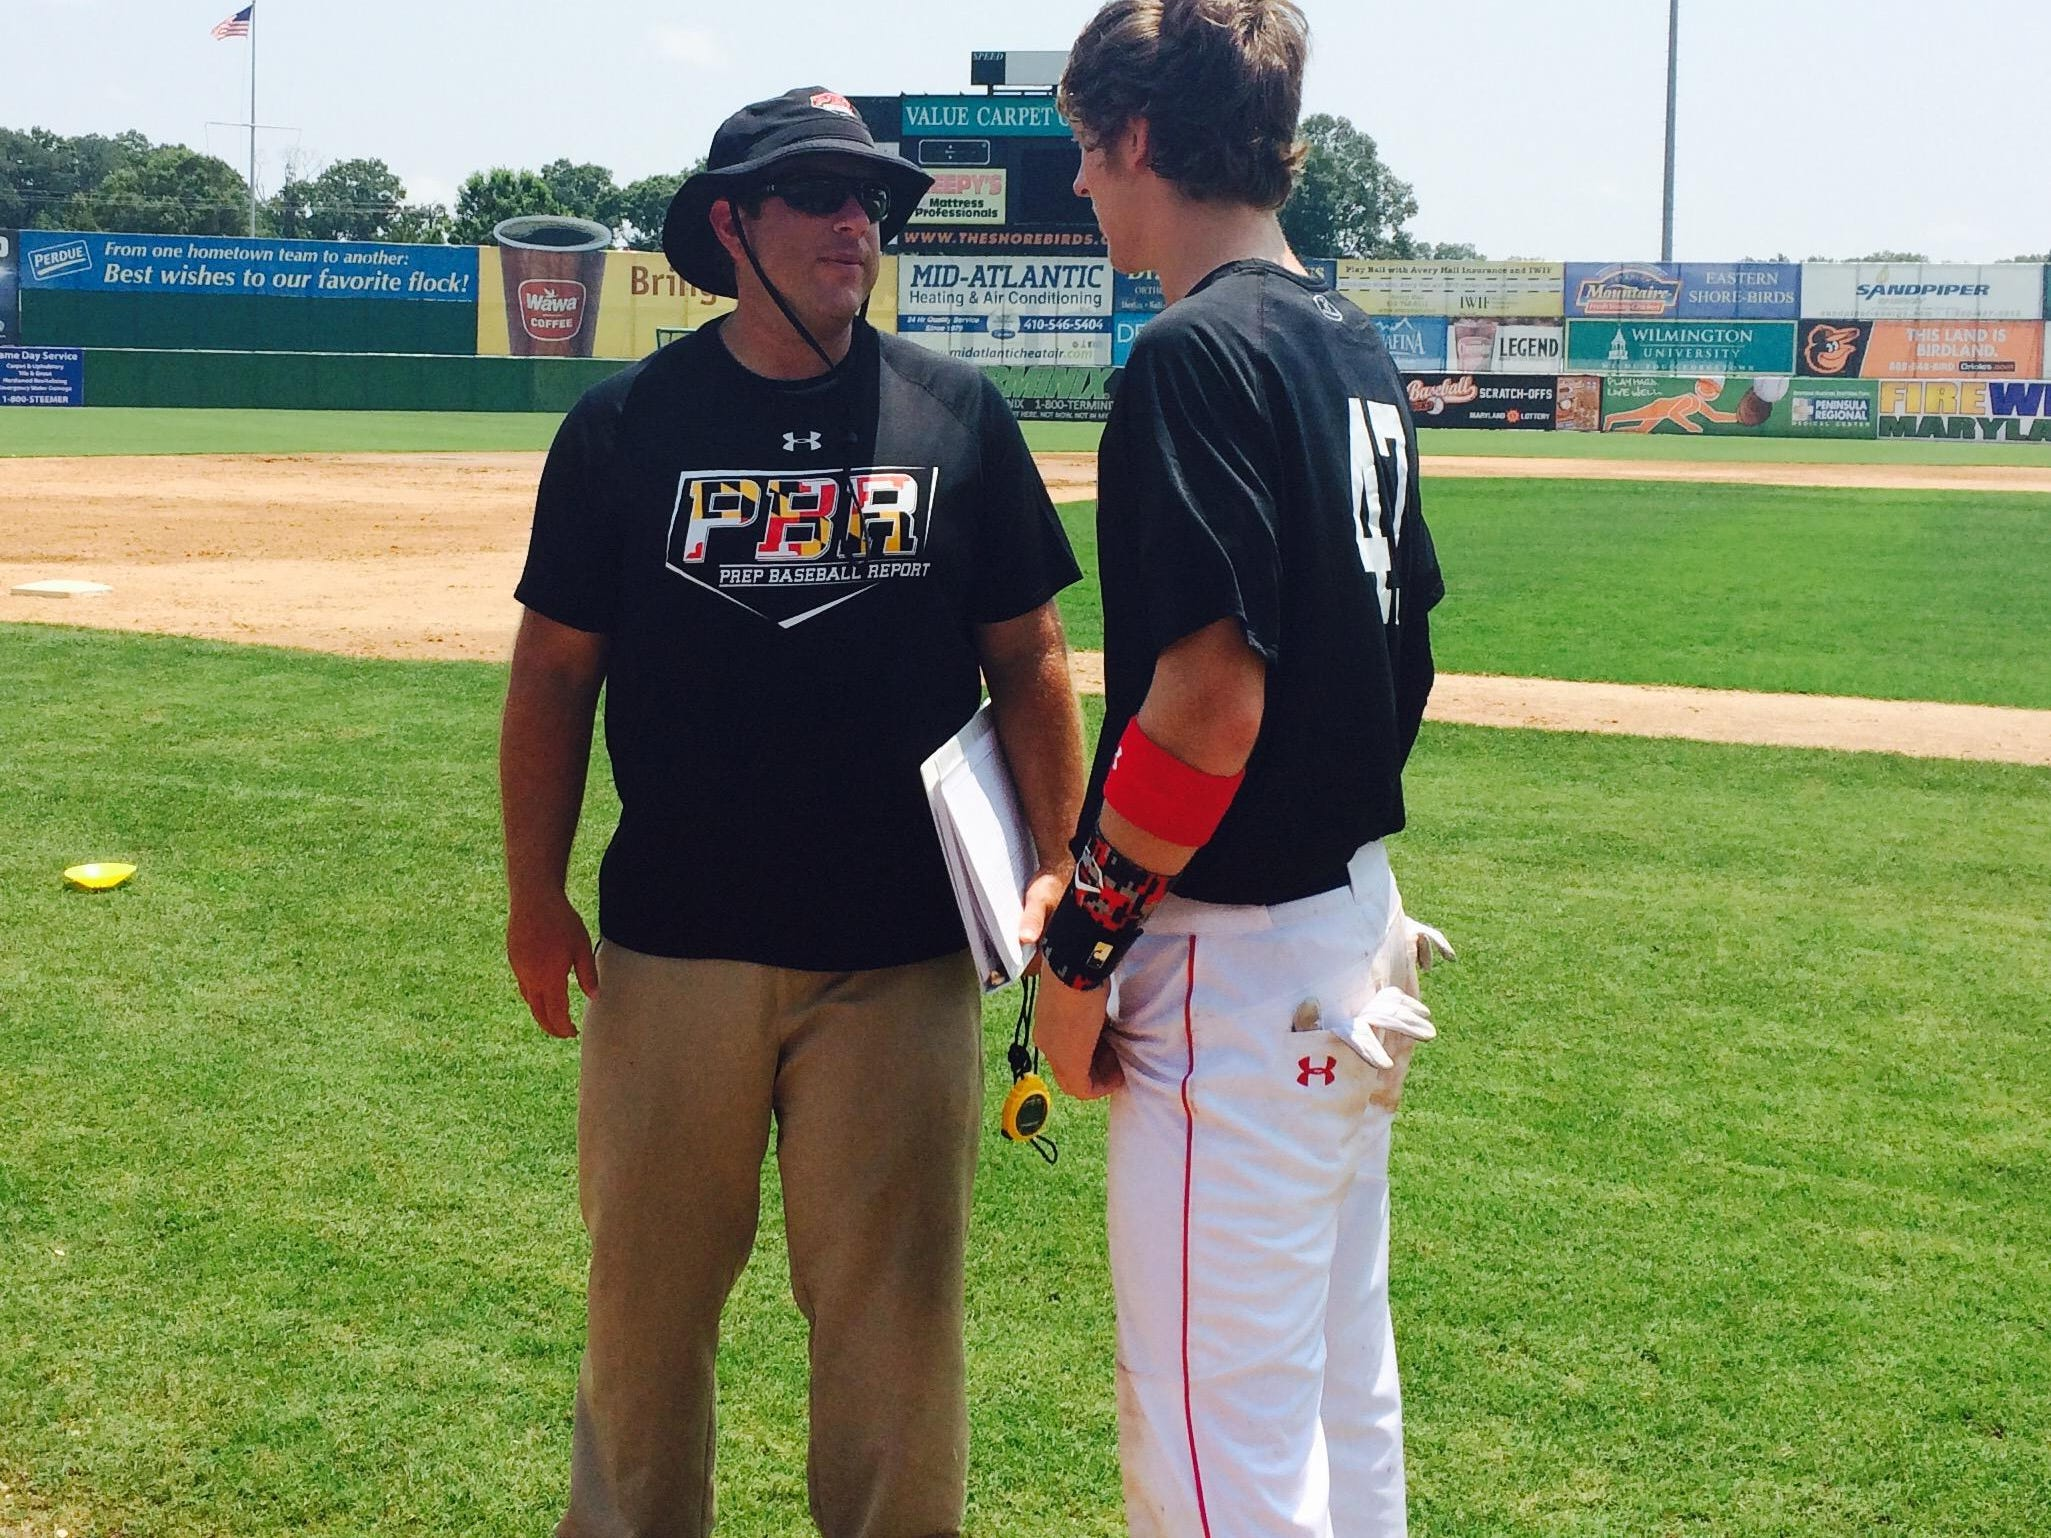 Jerry Shank, left, the PBR director of scouting for Maryland, talks with a player after the showcase.